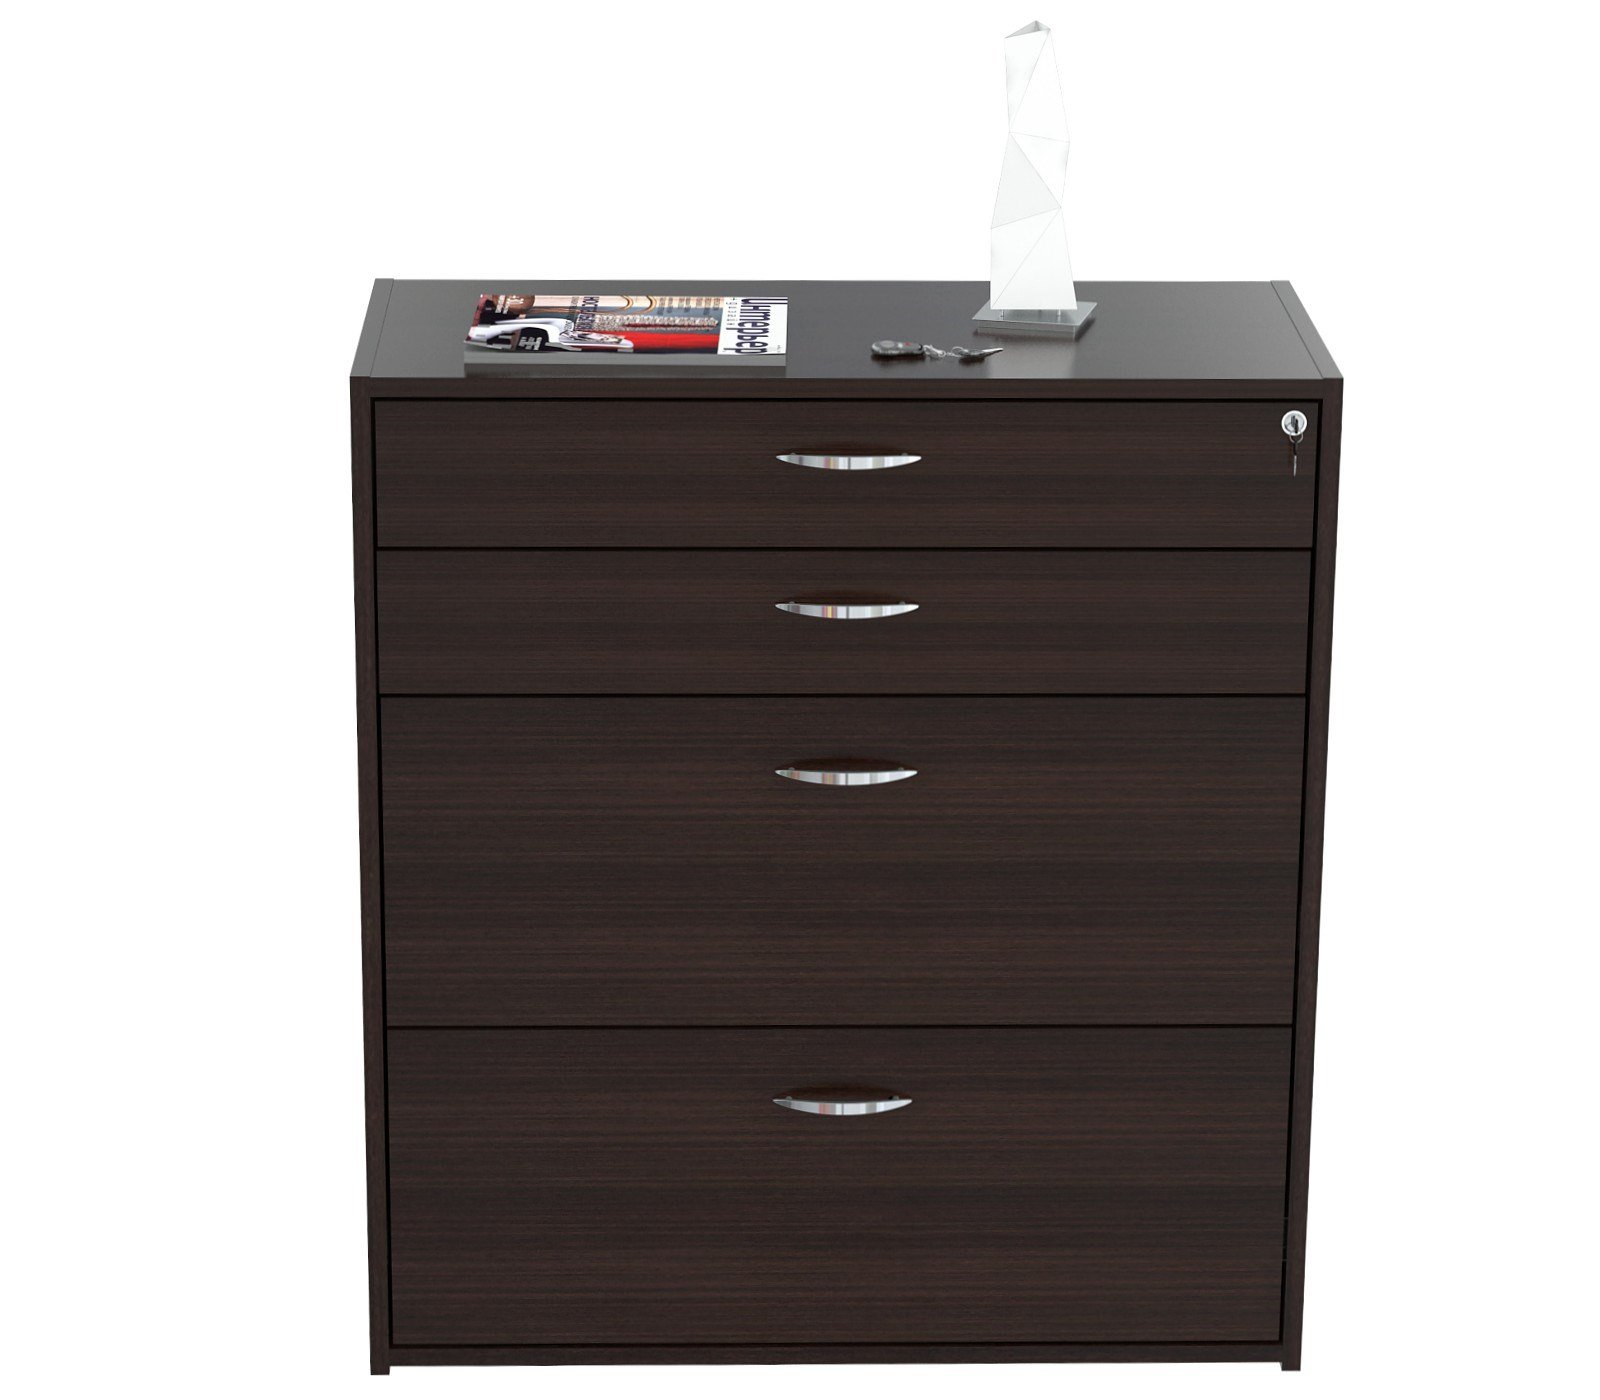 Inval America B2AR-2705 4 Drawer Storage/Filing Cabinet by Inval America (Image #5)